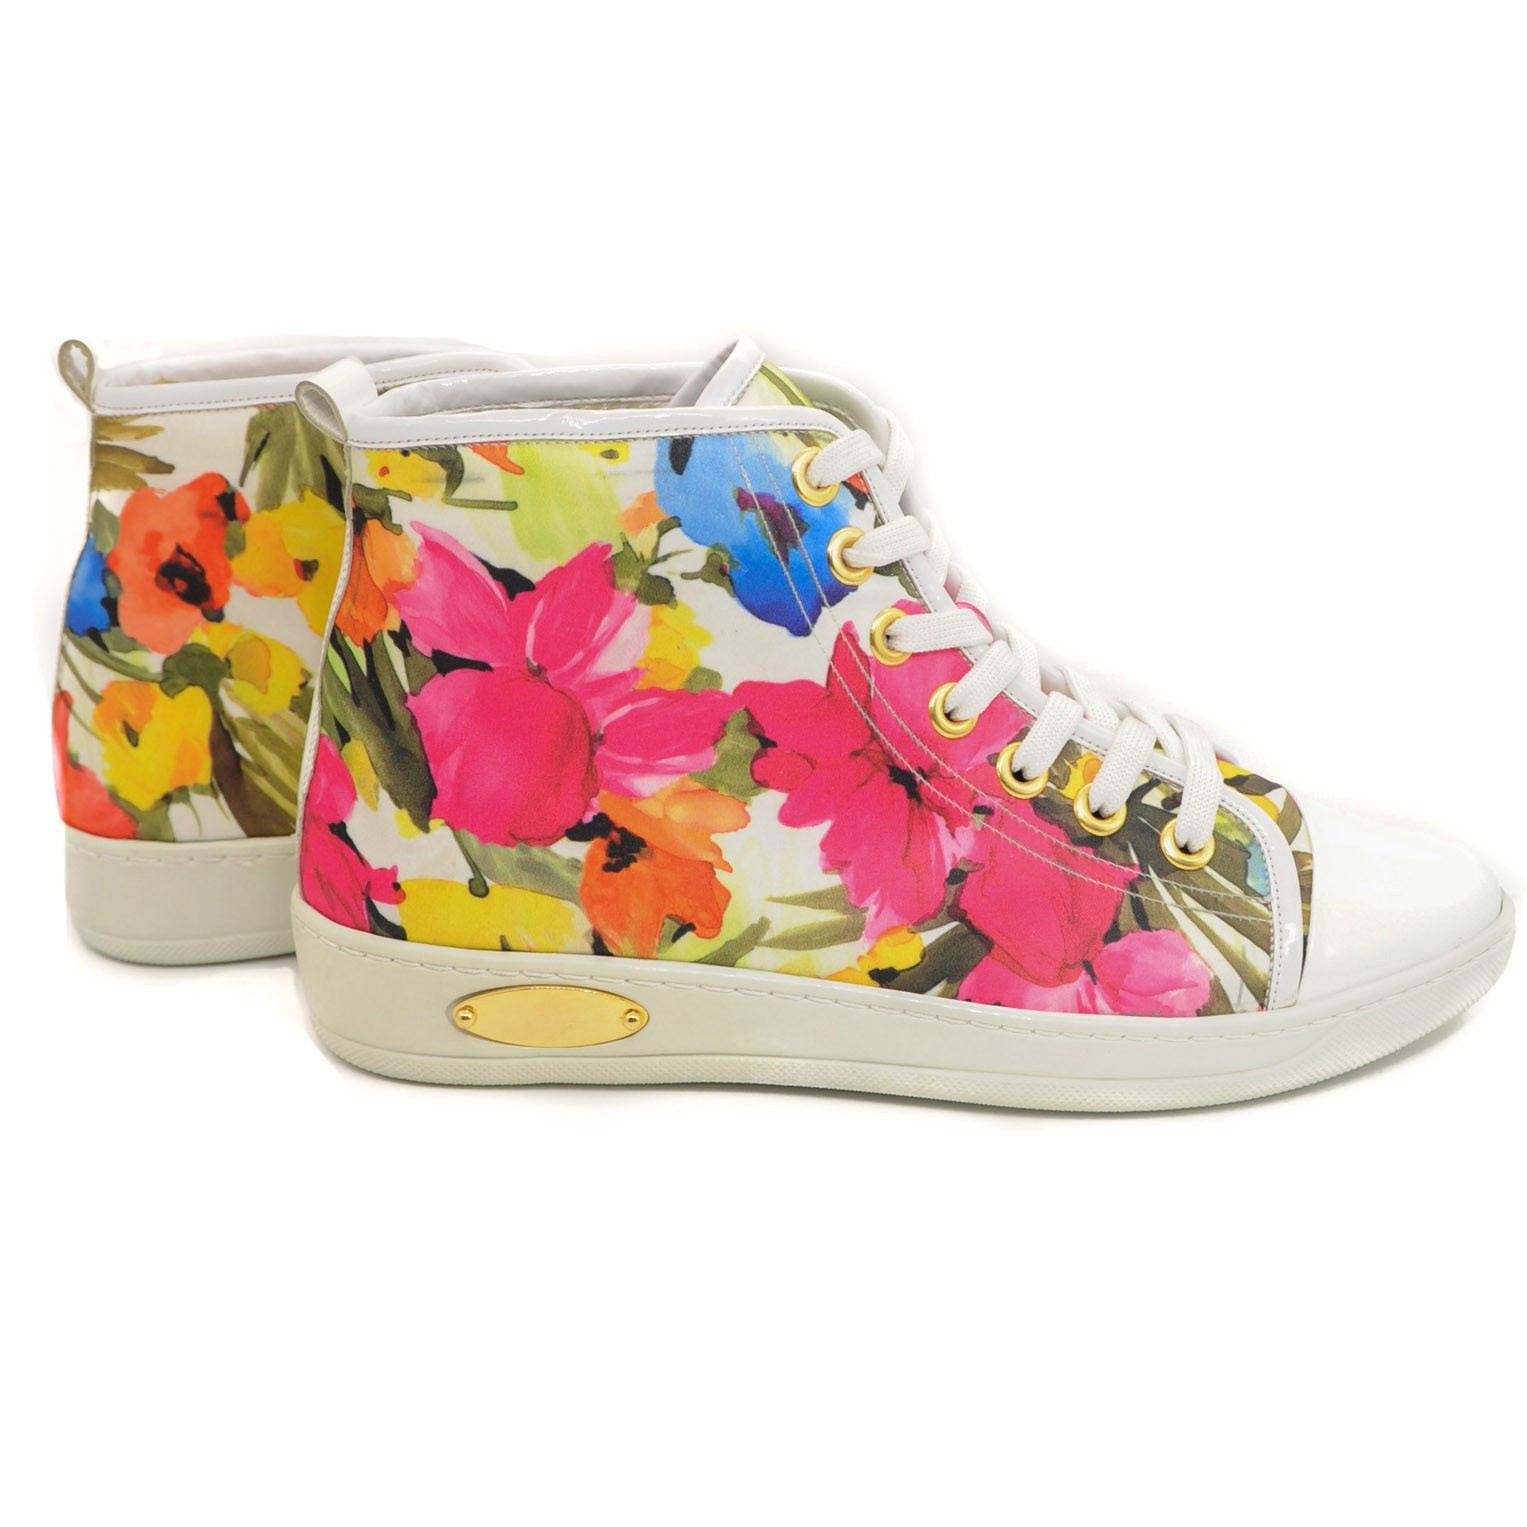 Floral Converse Style Trainer Sneakers with Rounded White Toecap and Laces